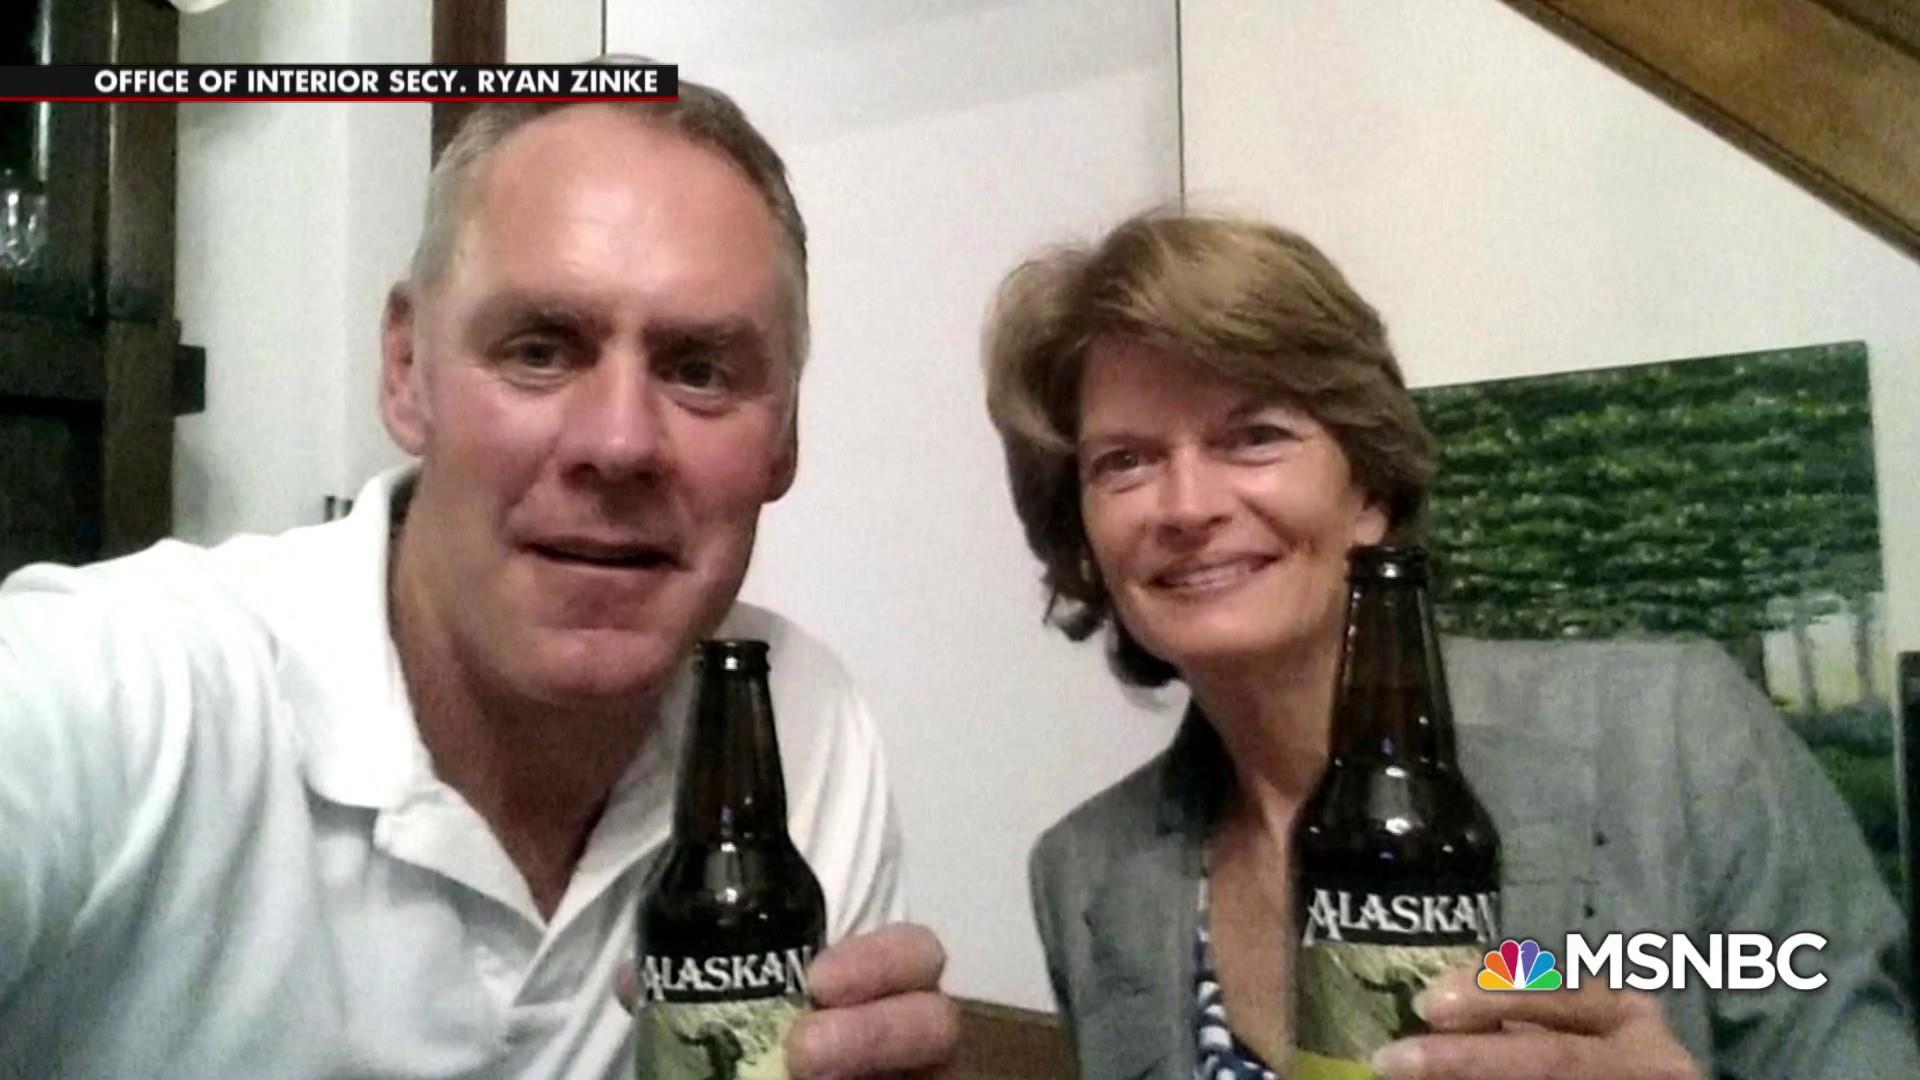 Halliburton makes Ryan Zinke's beer dream come true